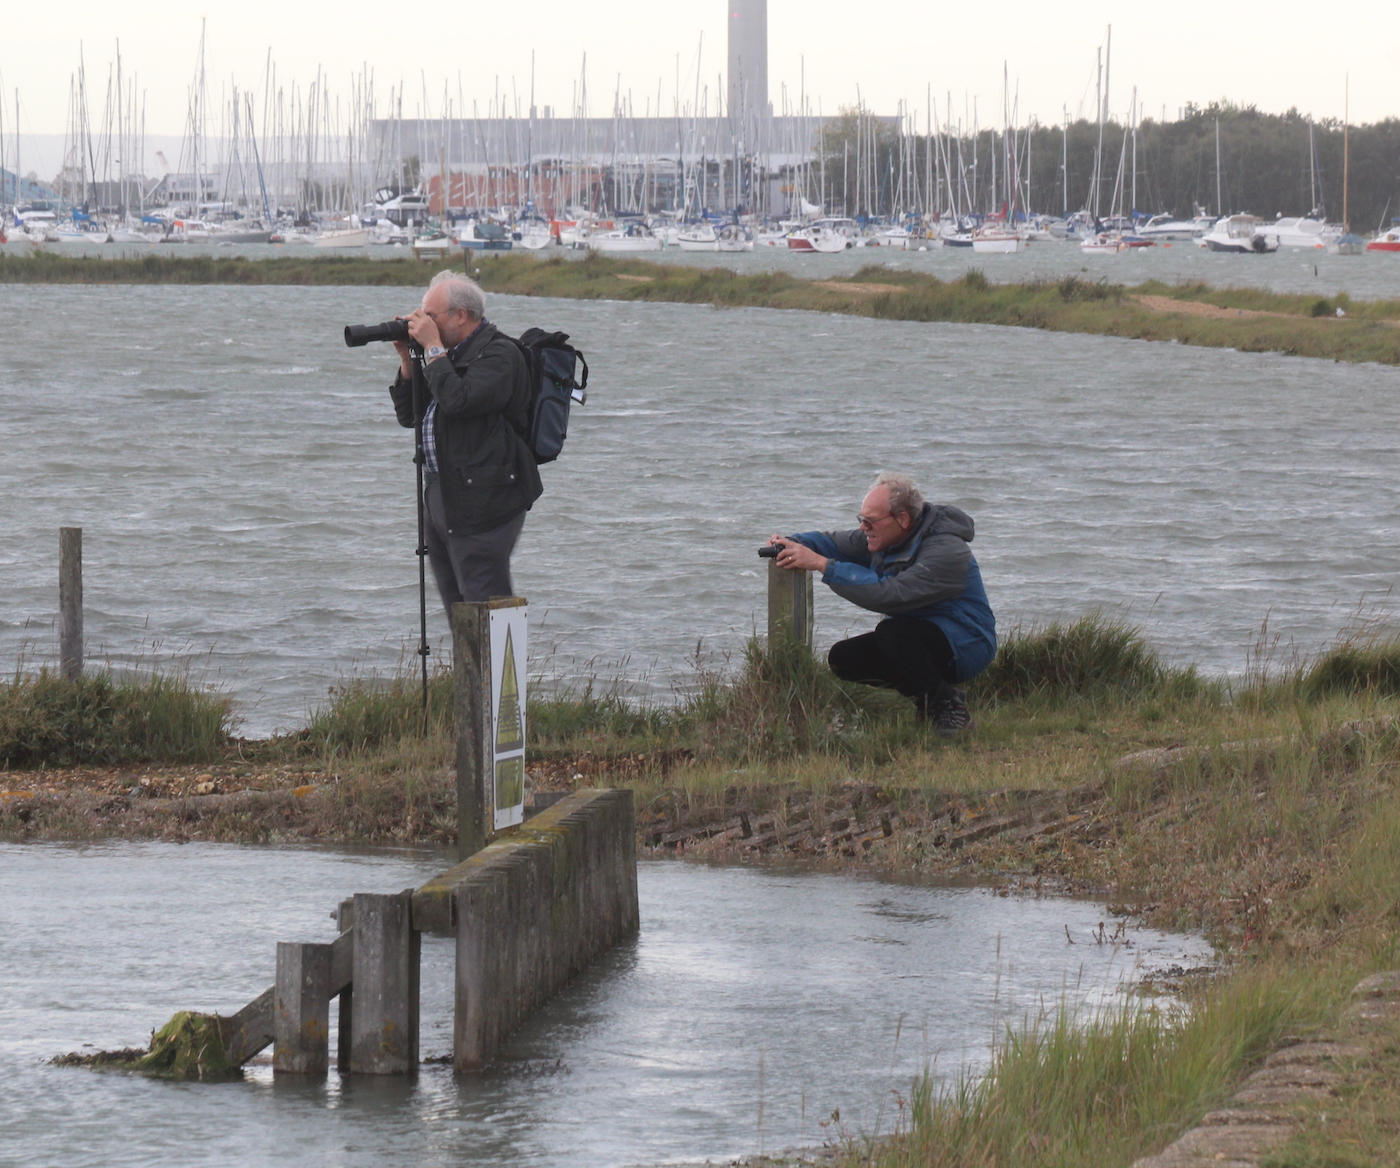 Danger! Photographers at work.